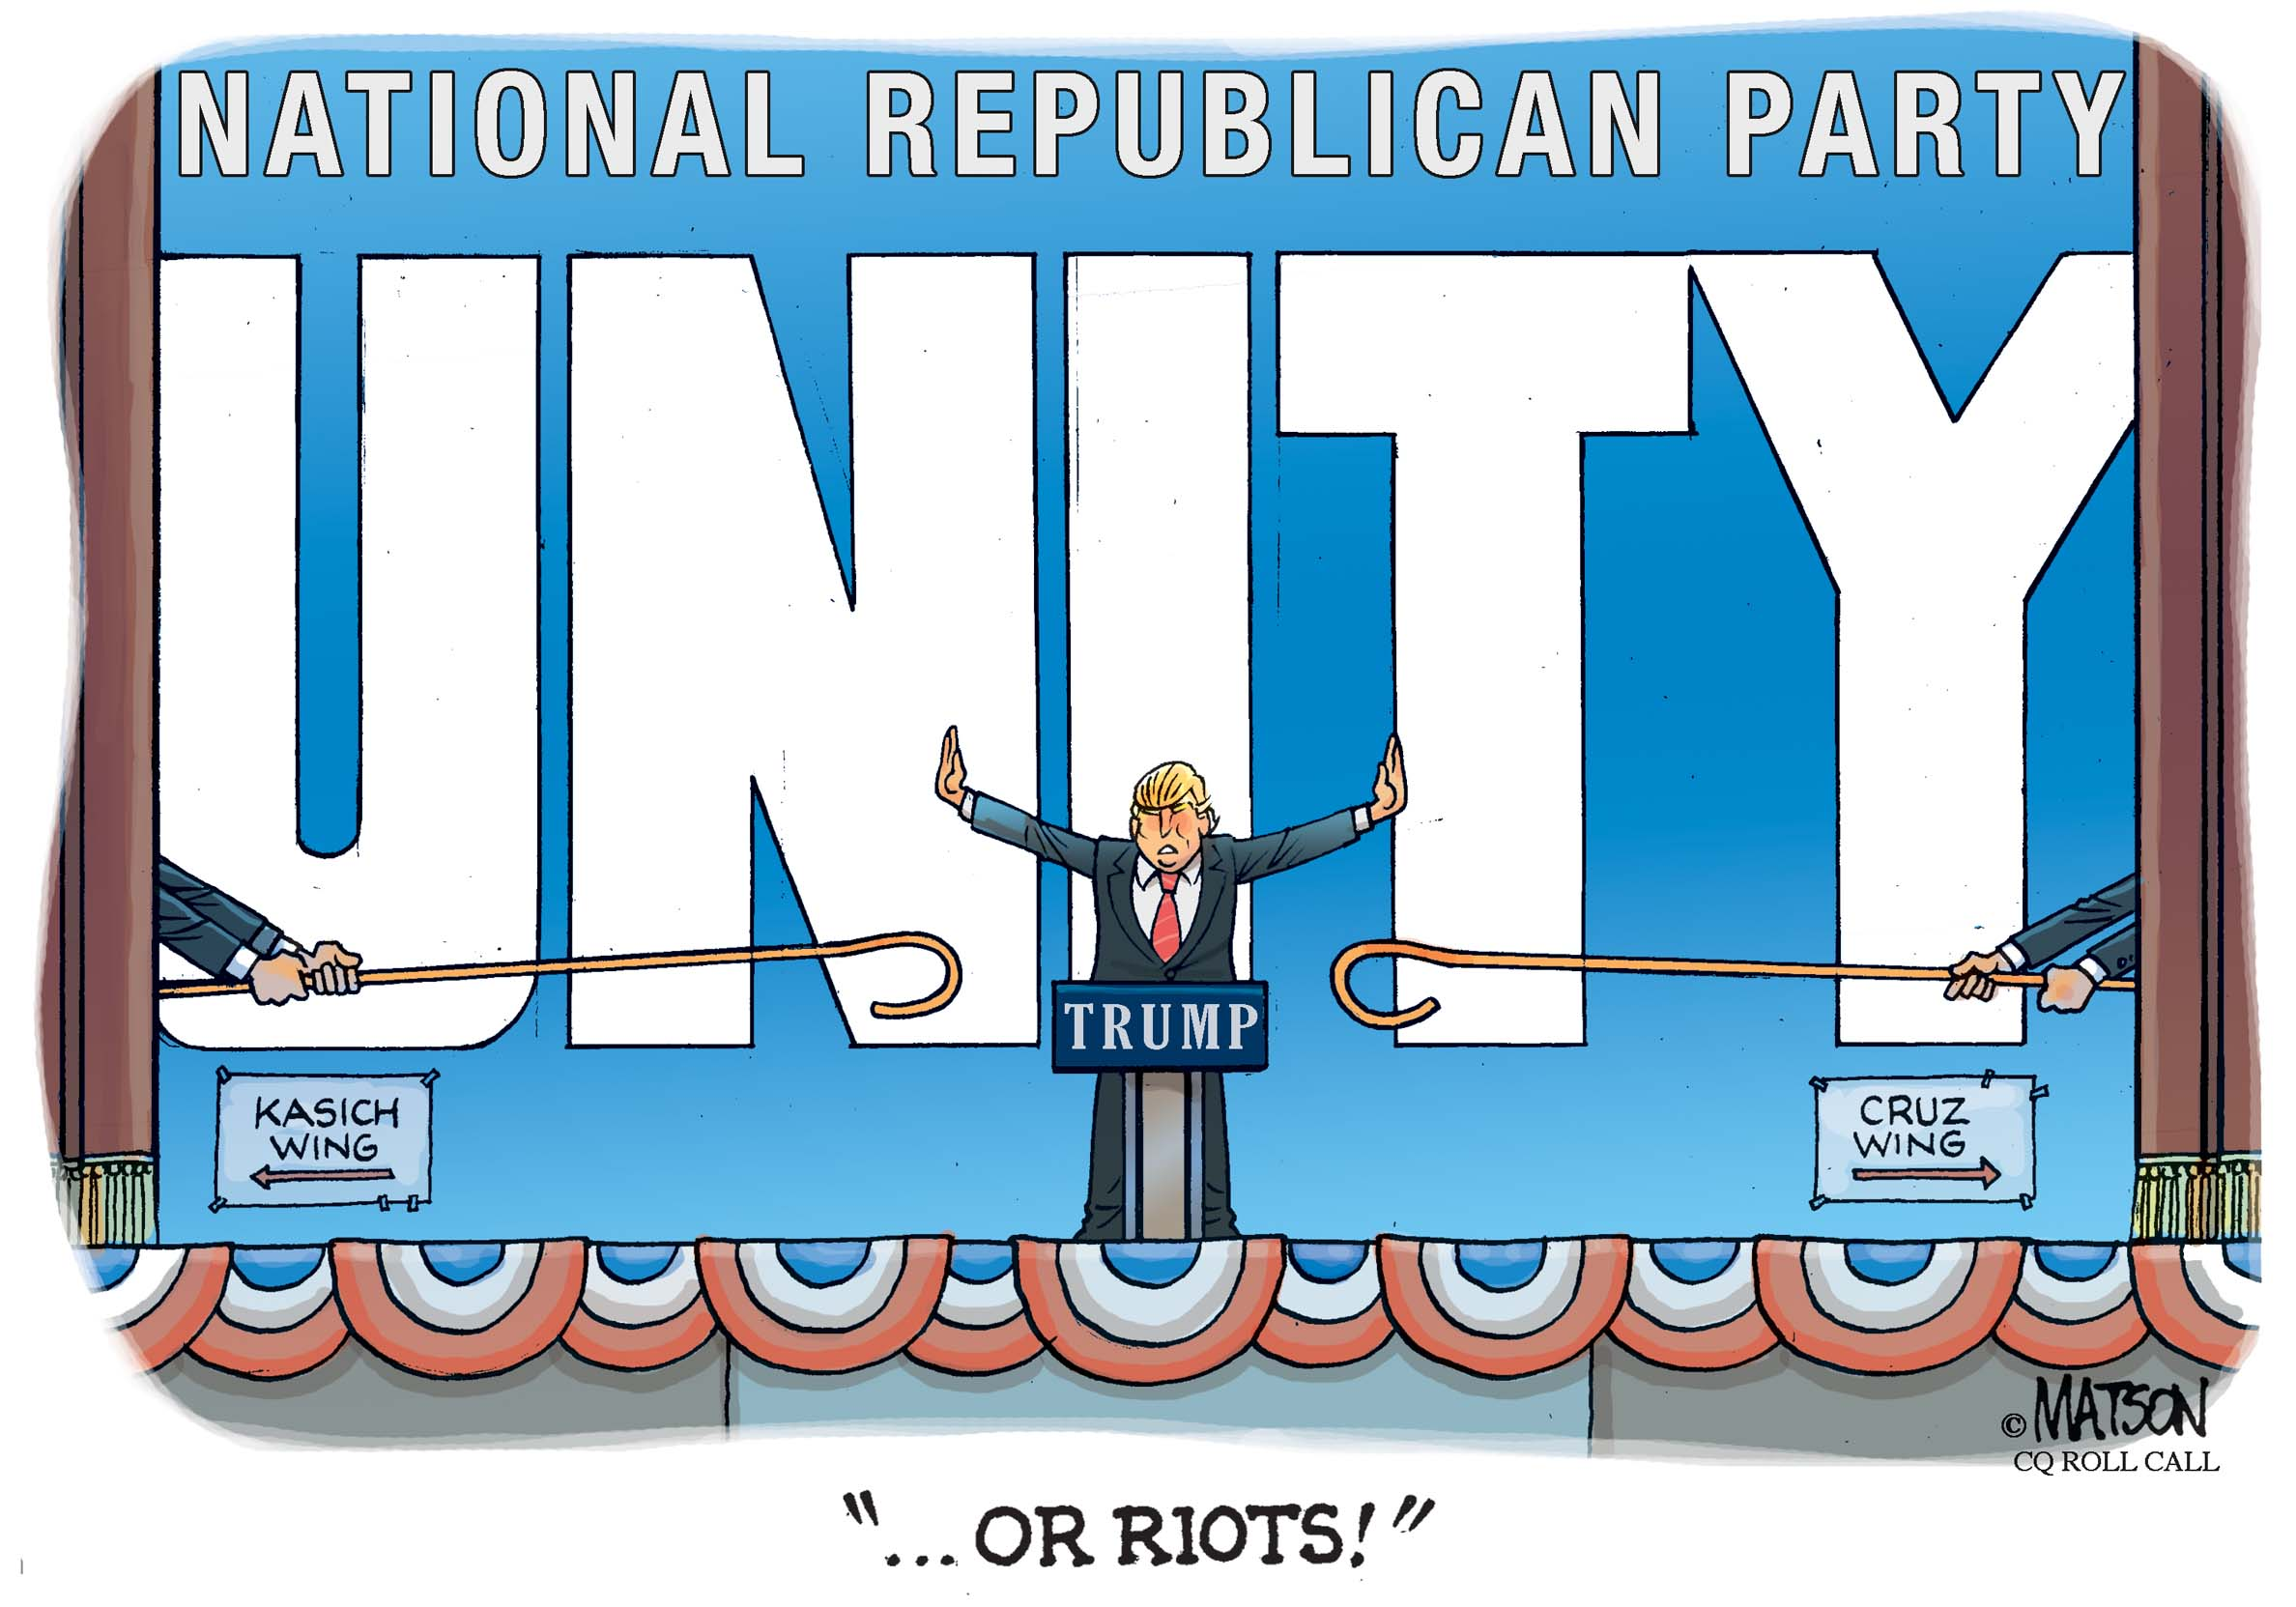 Donald Trump is the Great Republican Unifier